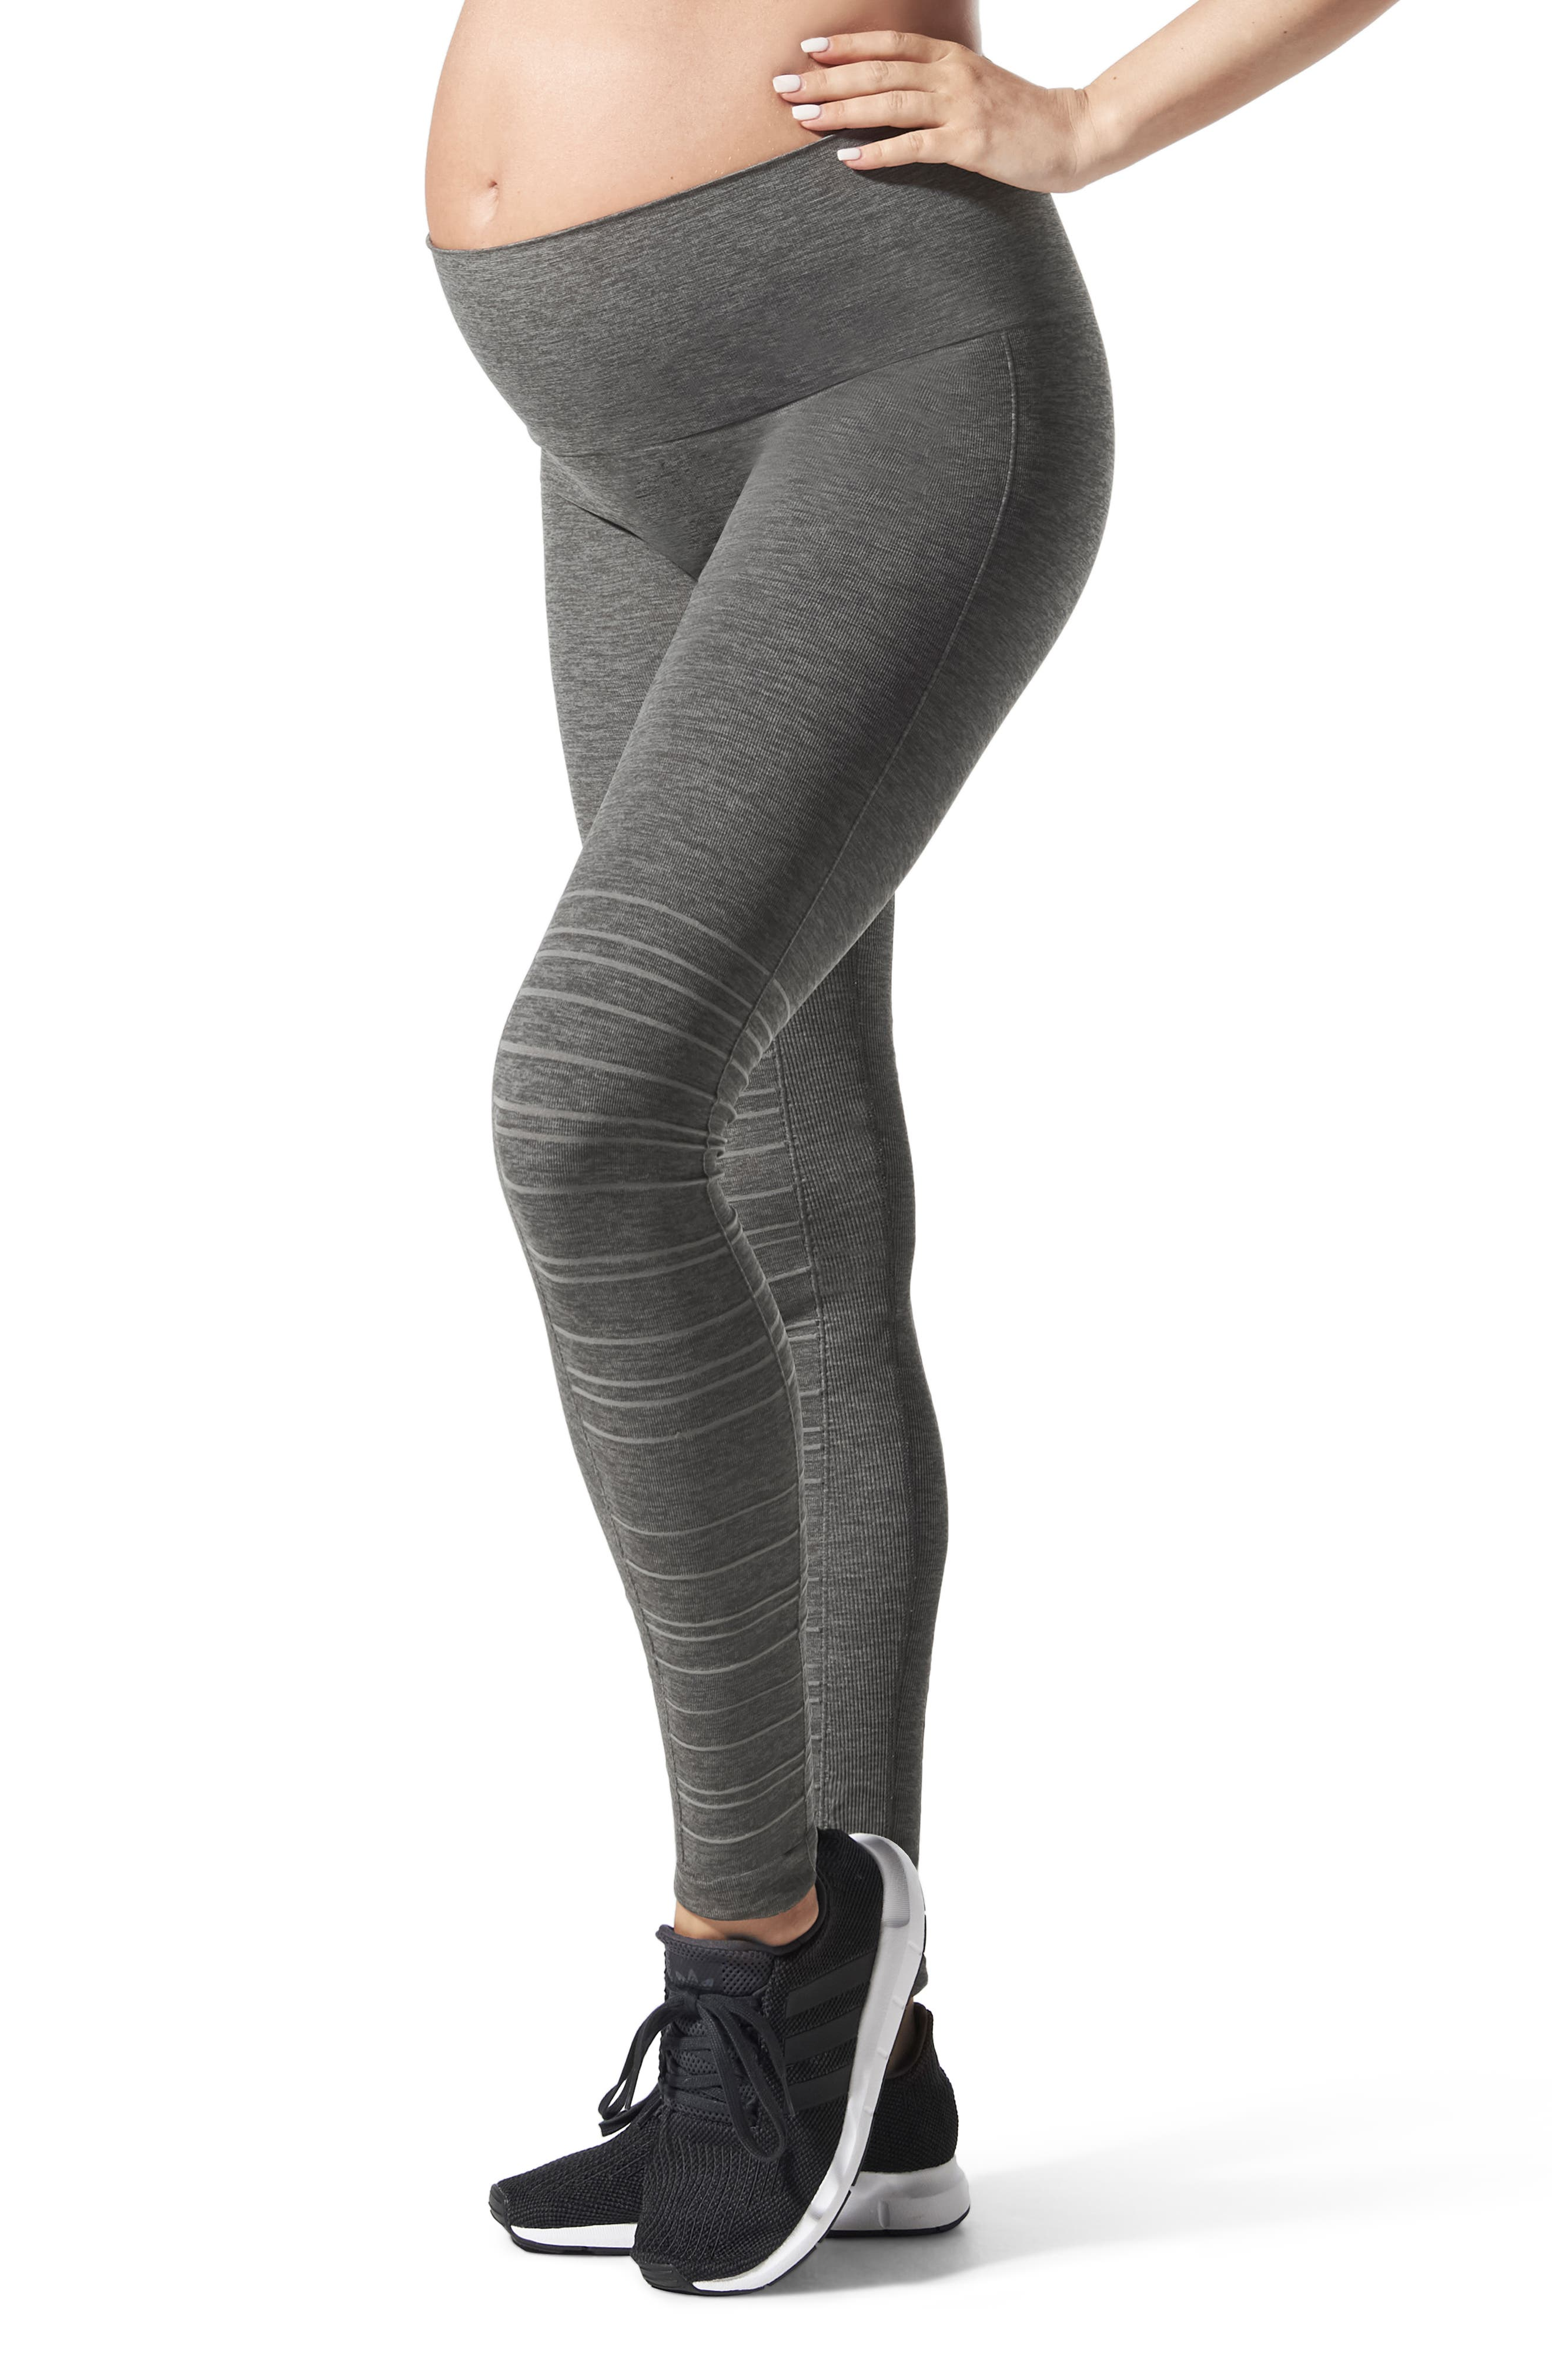 Women's Blanqi Sportsupport Hipster Cuff Support Maternity/postpartum Leggings